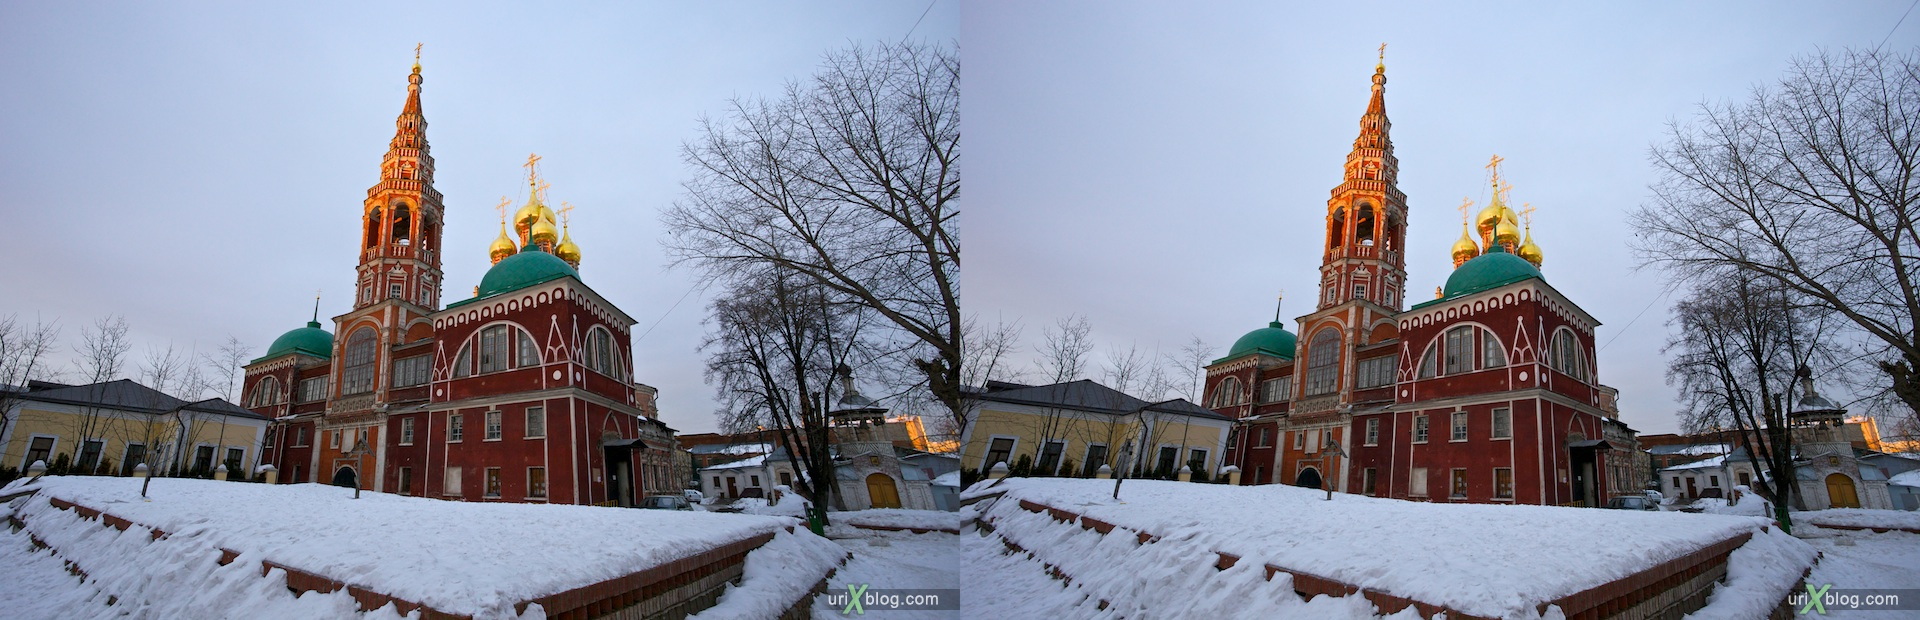 2011 церковь в Кадашах, храм в Кадашах, Kadashi Church, 3D, стерео, stereo